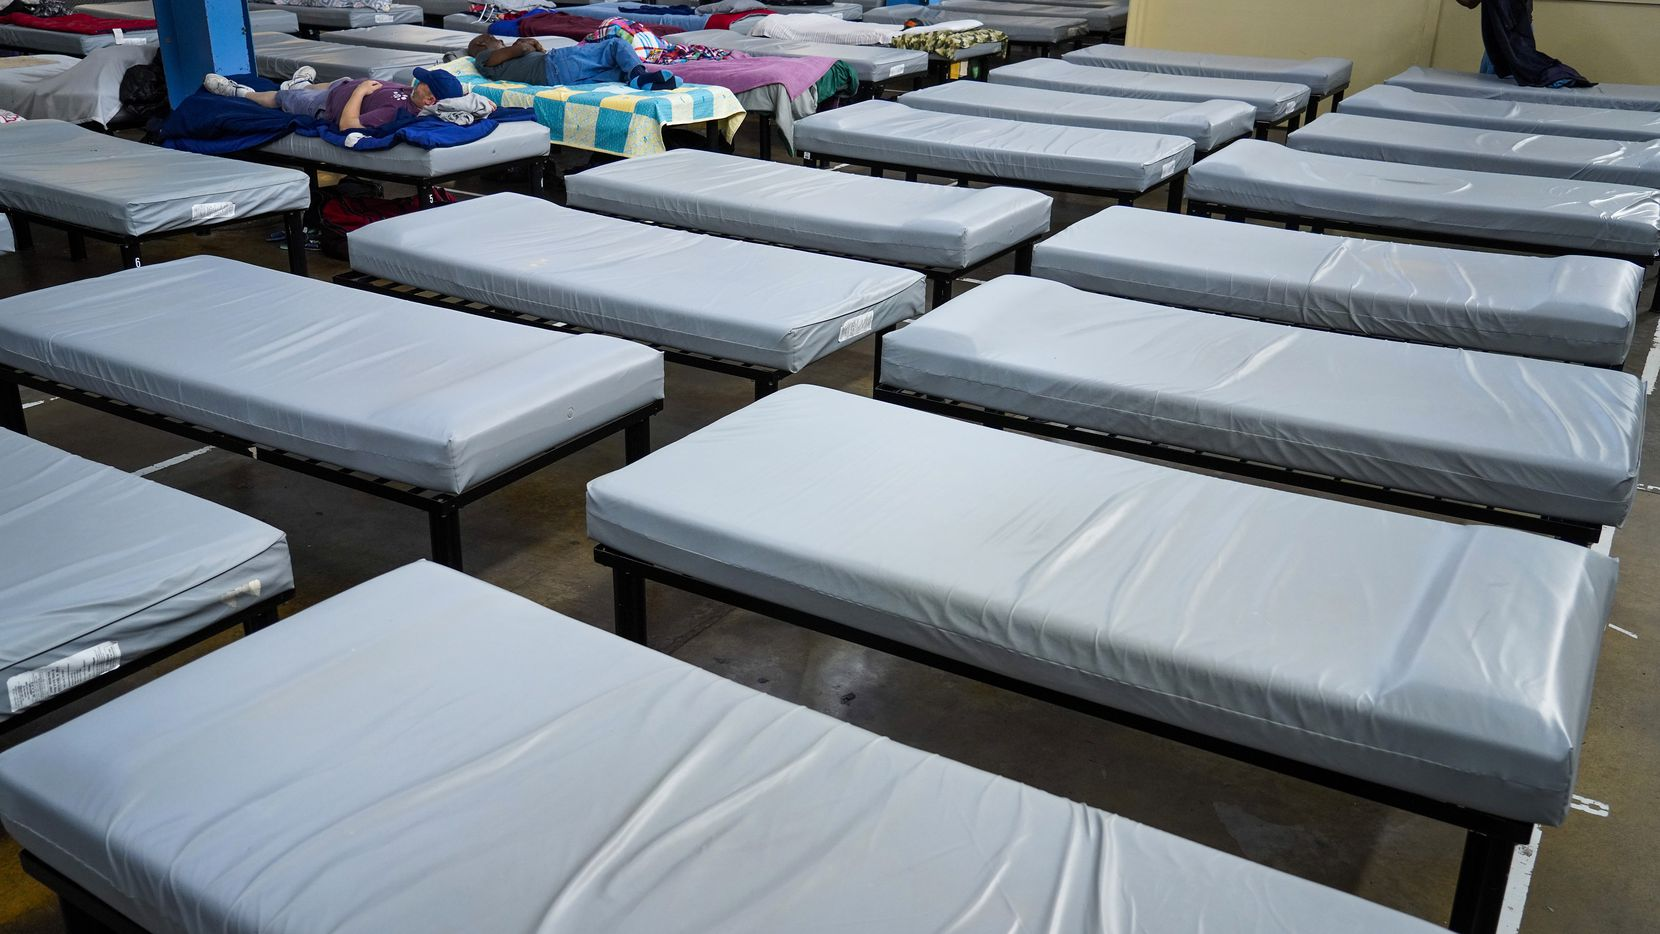 Beds are lined up at Austin Street Center on Wednesday, March 11, 2020, in Dallas. Mayor Eric Johnson on Thursday, Feb. 25, 2021, announced that this was one of 25 charities that will receive a $20,000 grant from the Mayor's Disaster Relief Fund.